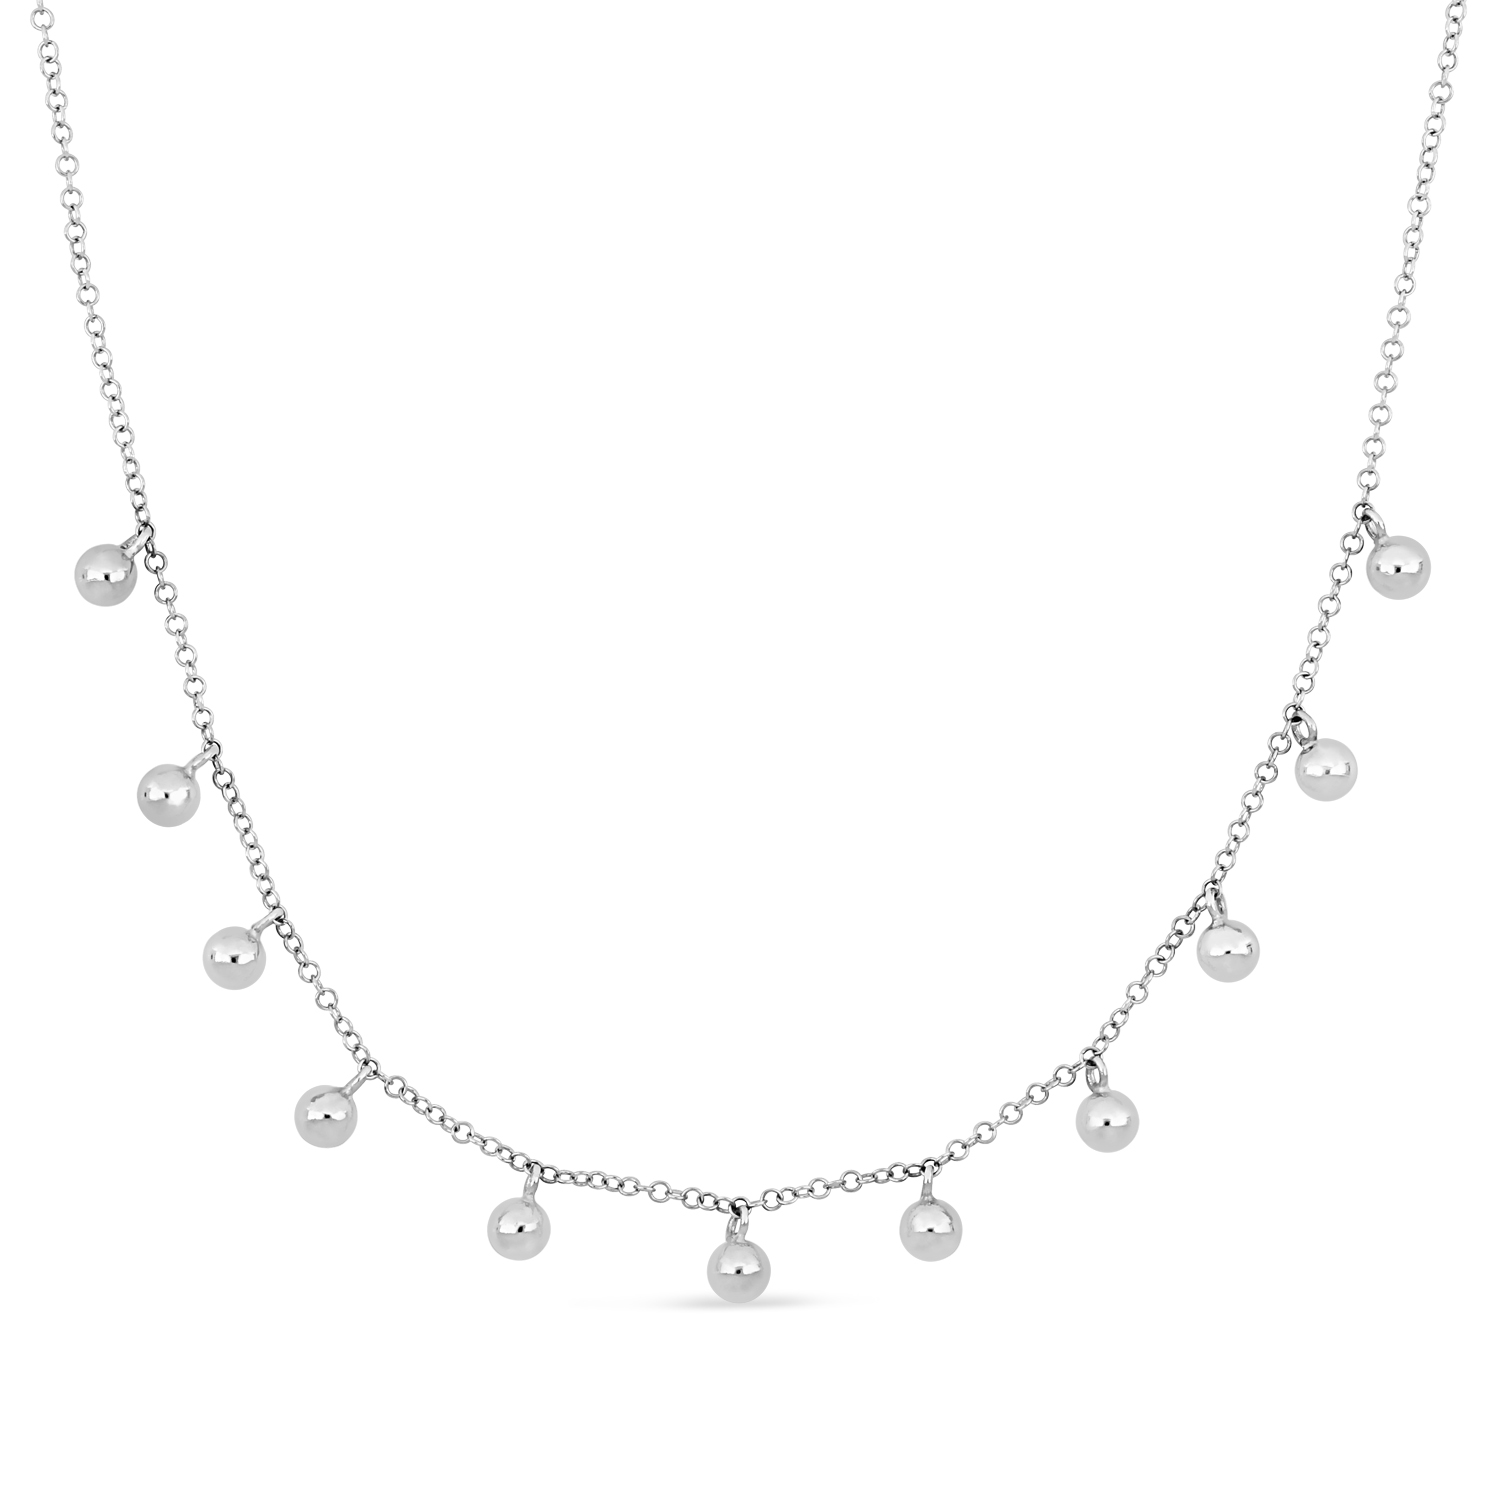 Fancy Spheres Necklace 18k White Gold